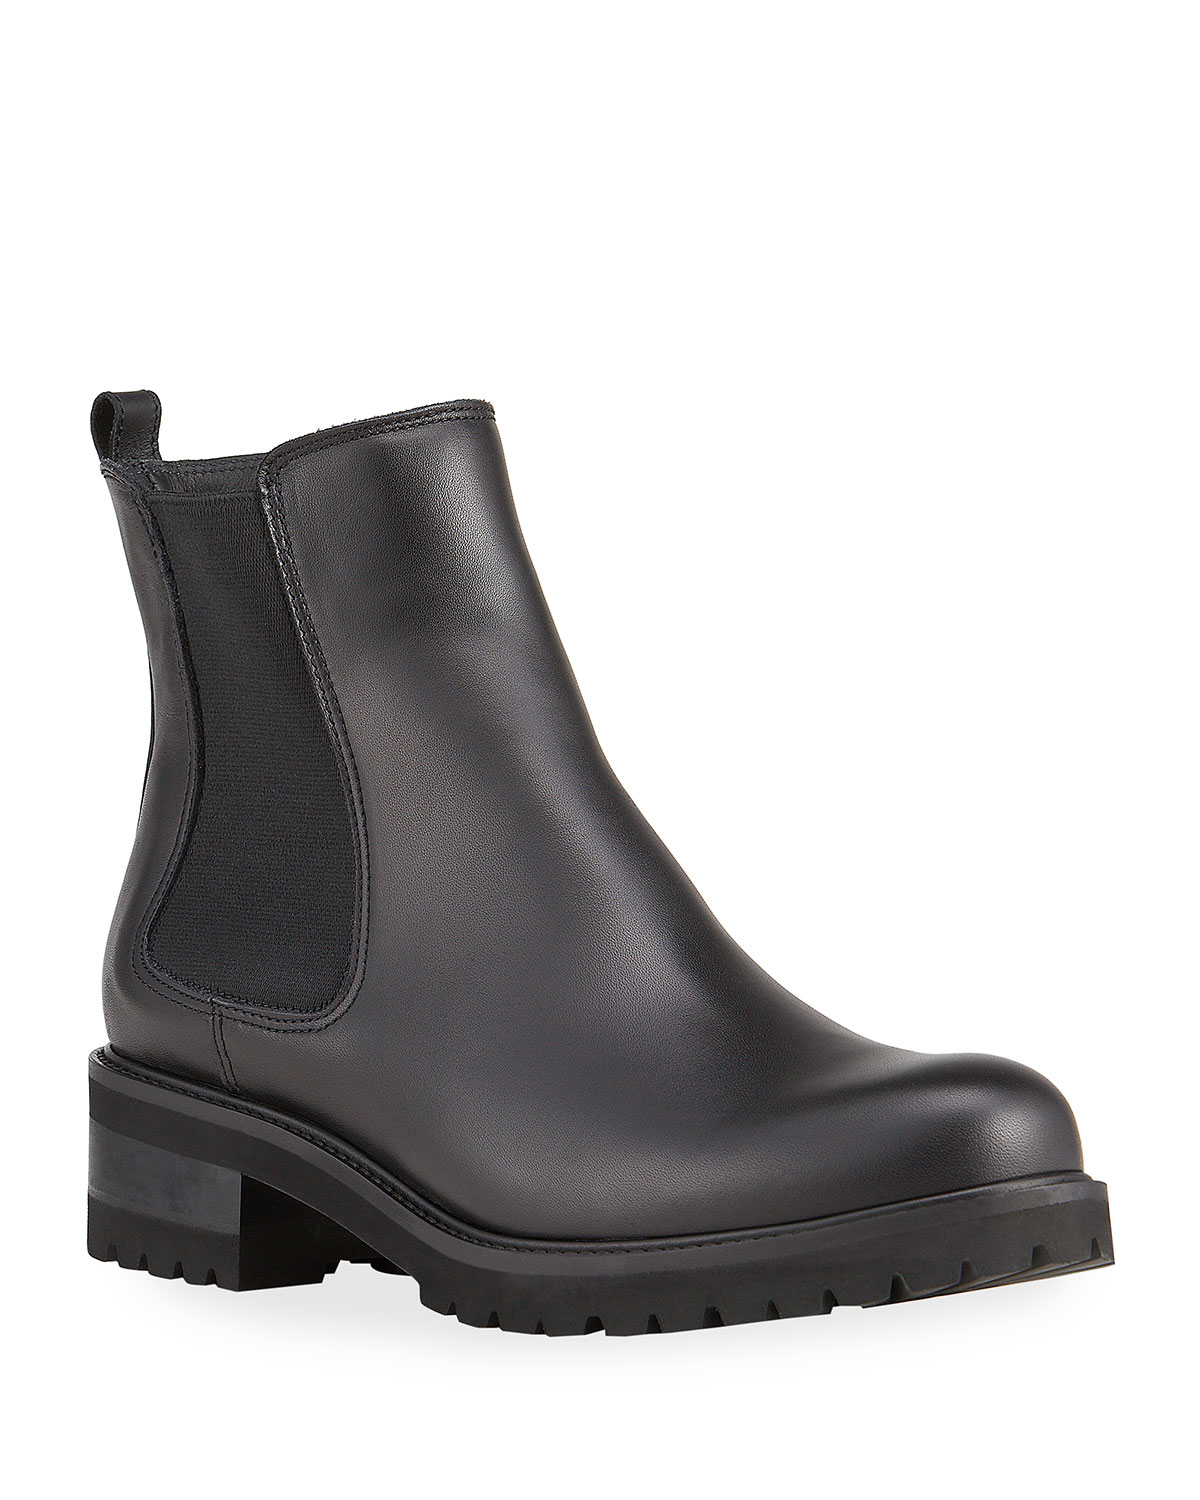 Connor Waterproof Leather Chelsea Boots